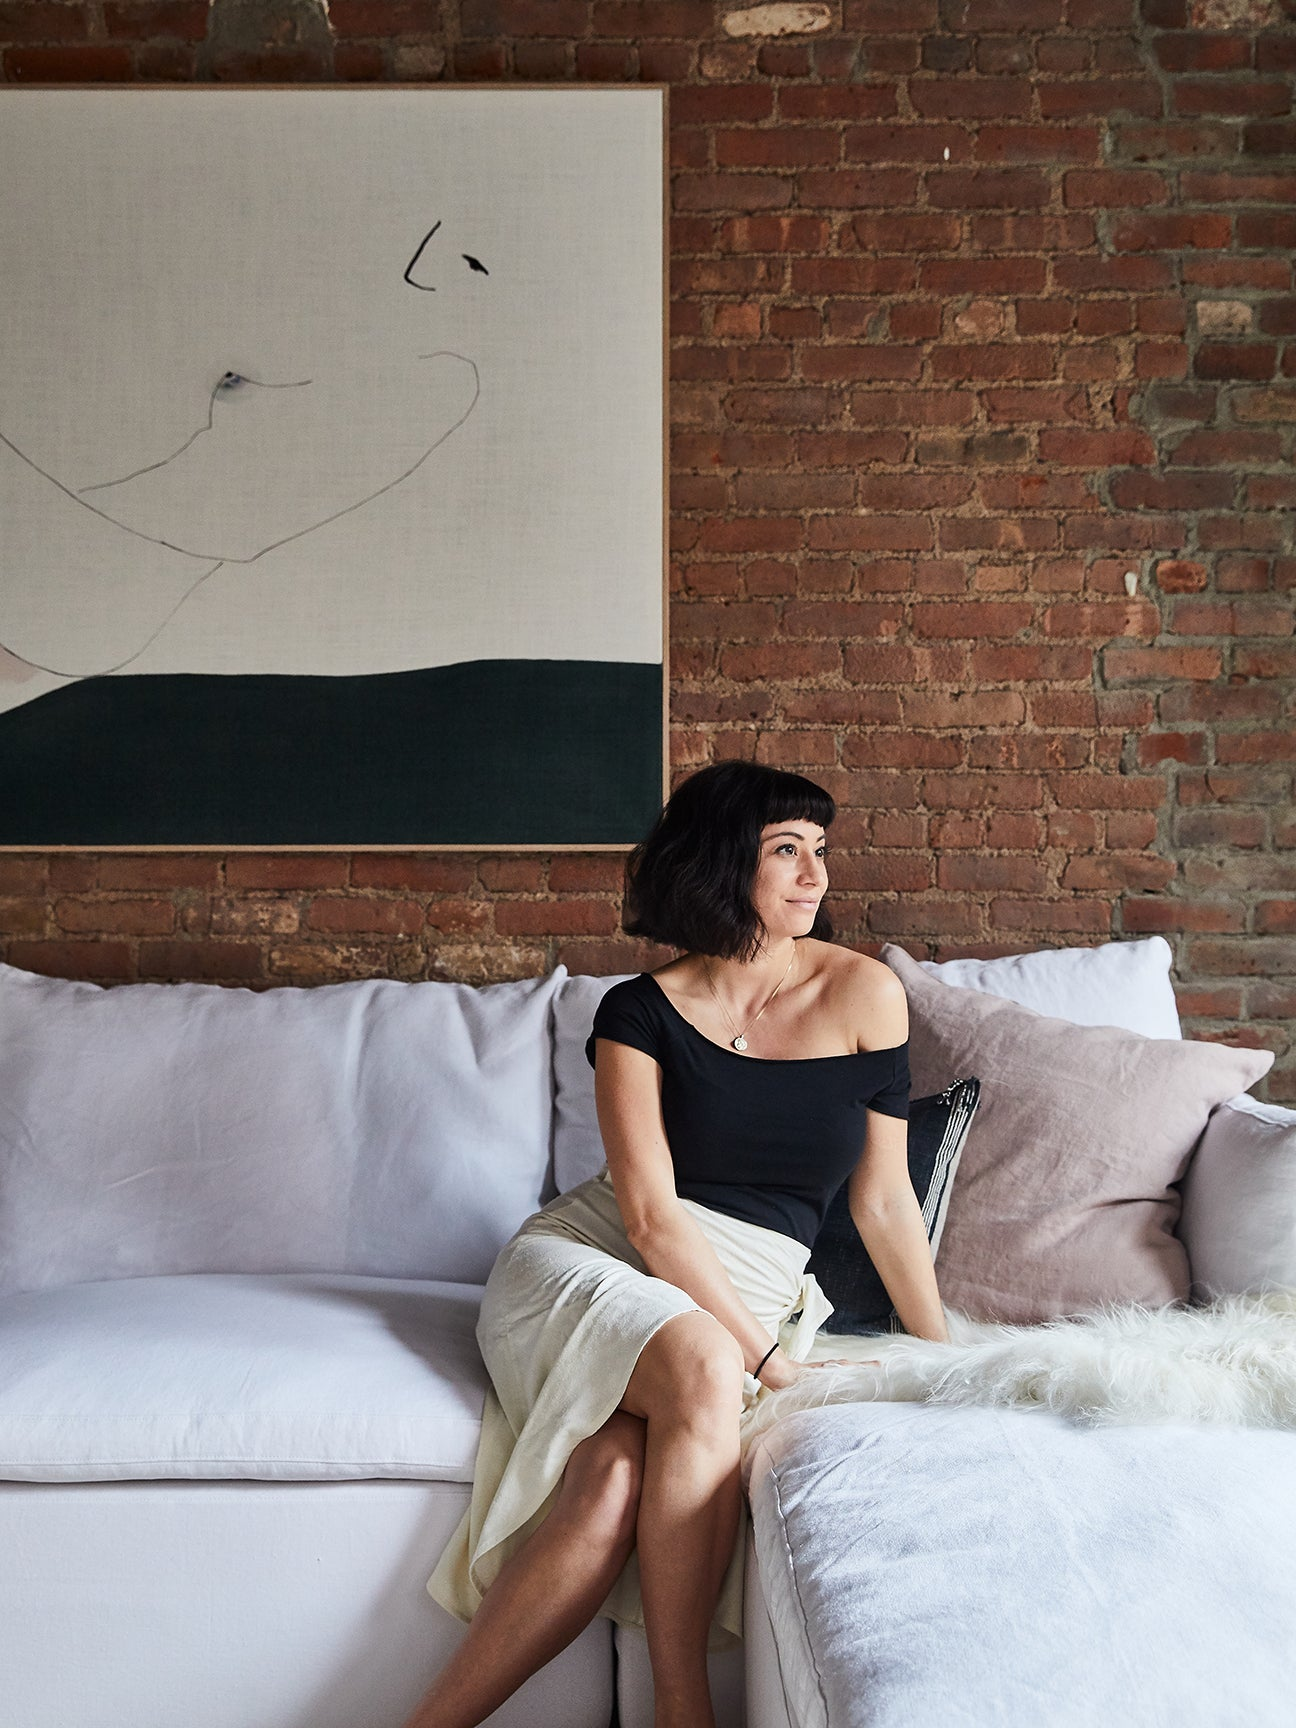 Only the Brick Walls Are Original in This Soho Loft Makeover